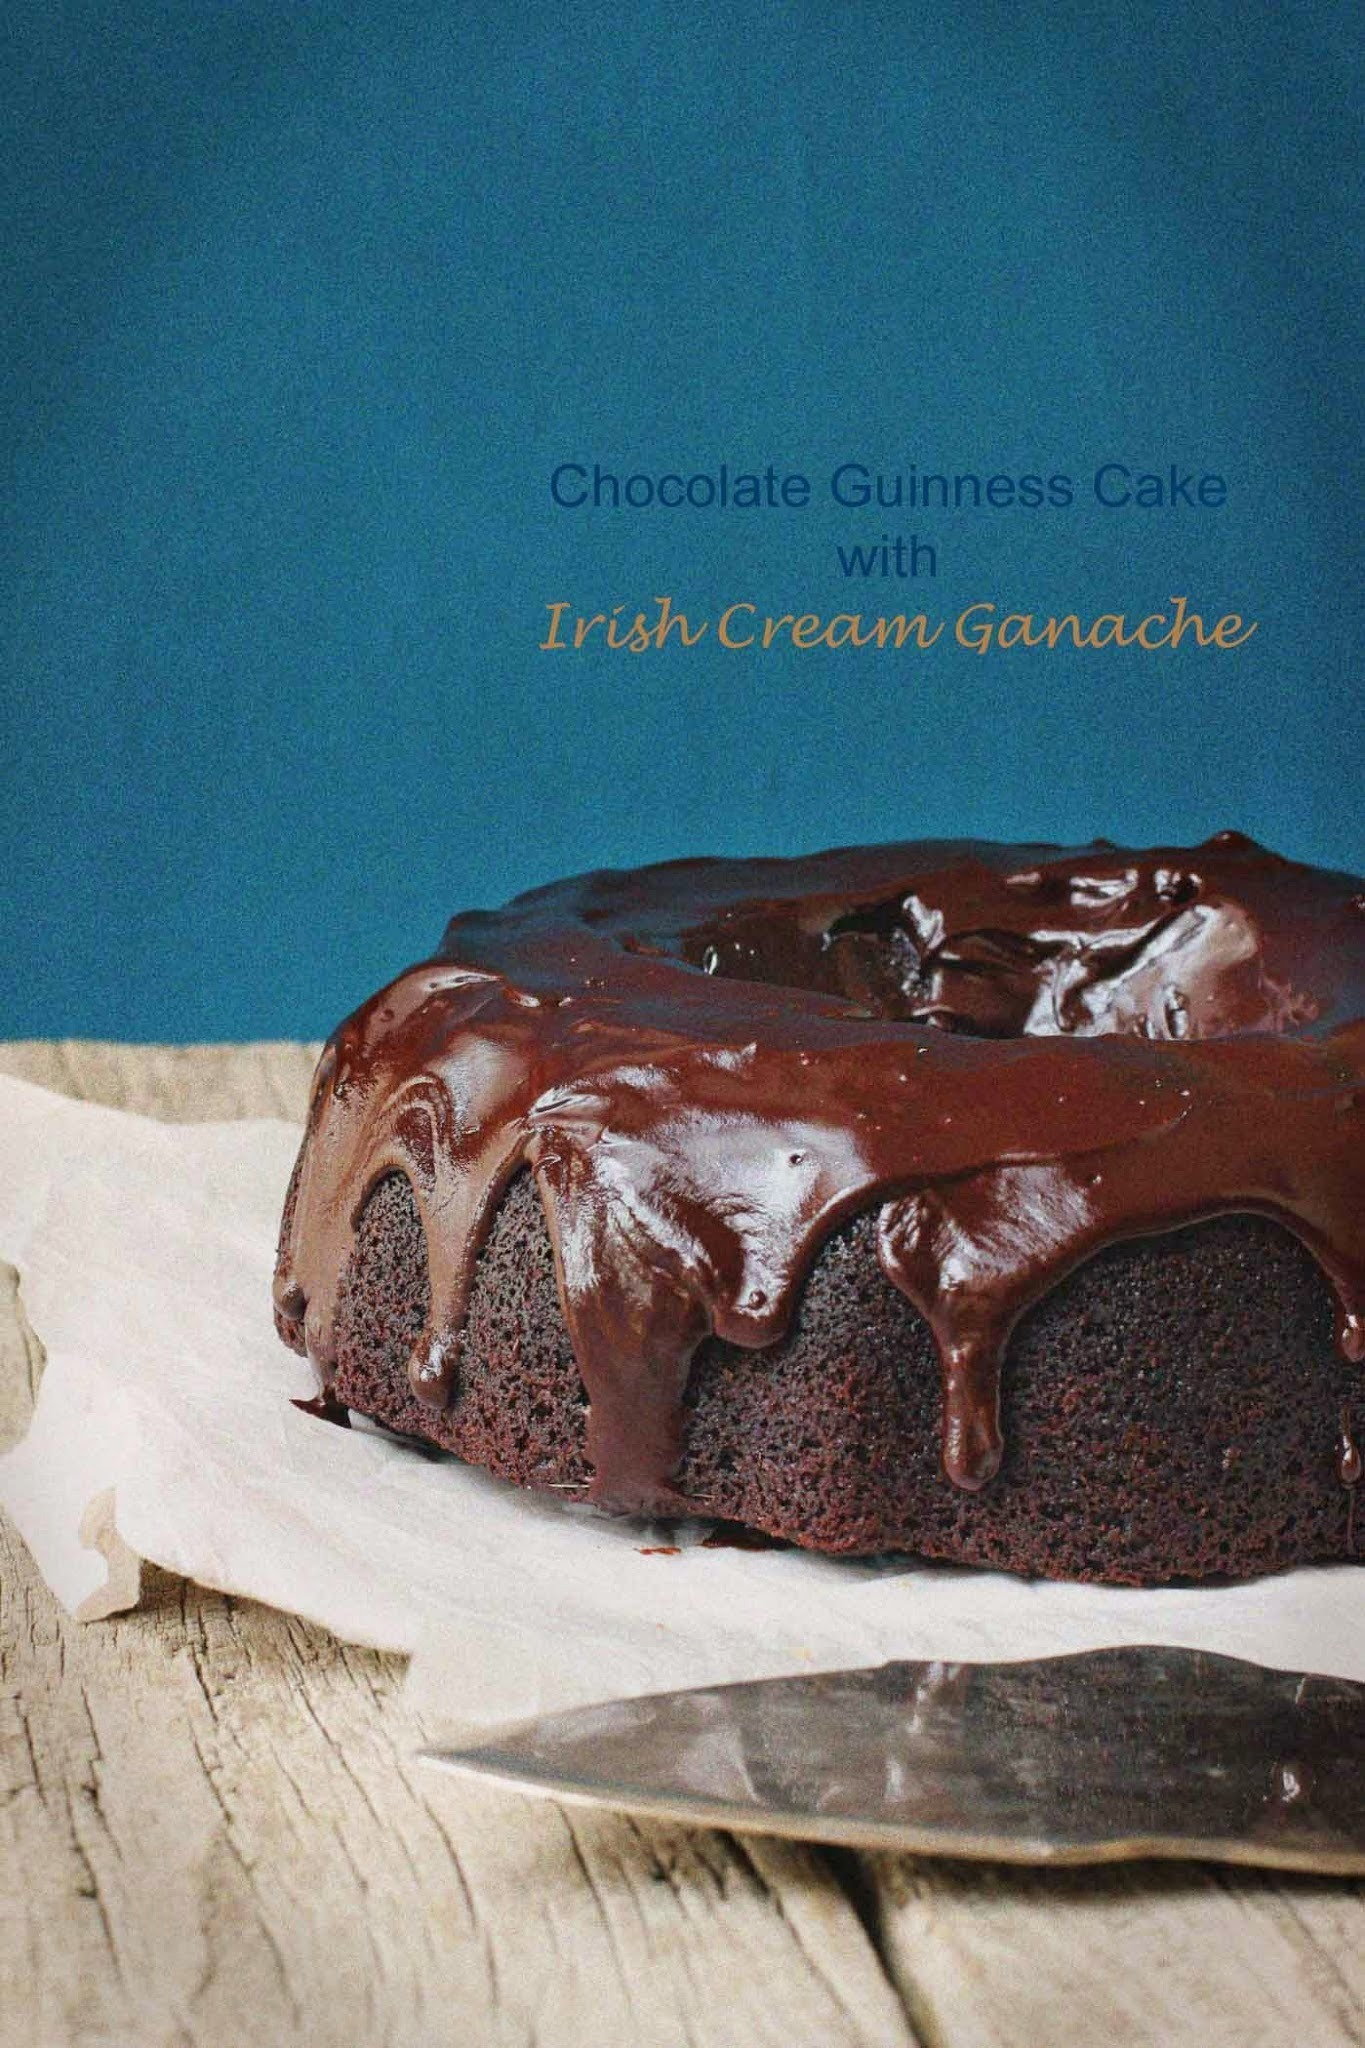 Chocolate Guinness Cake with Irish Cream Ganache